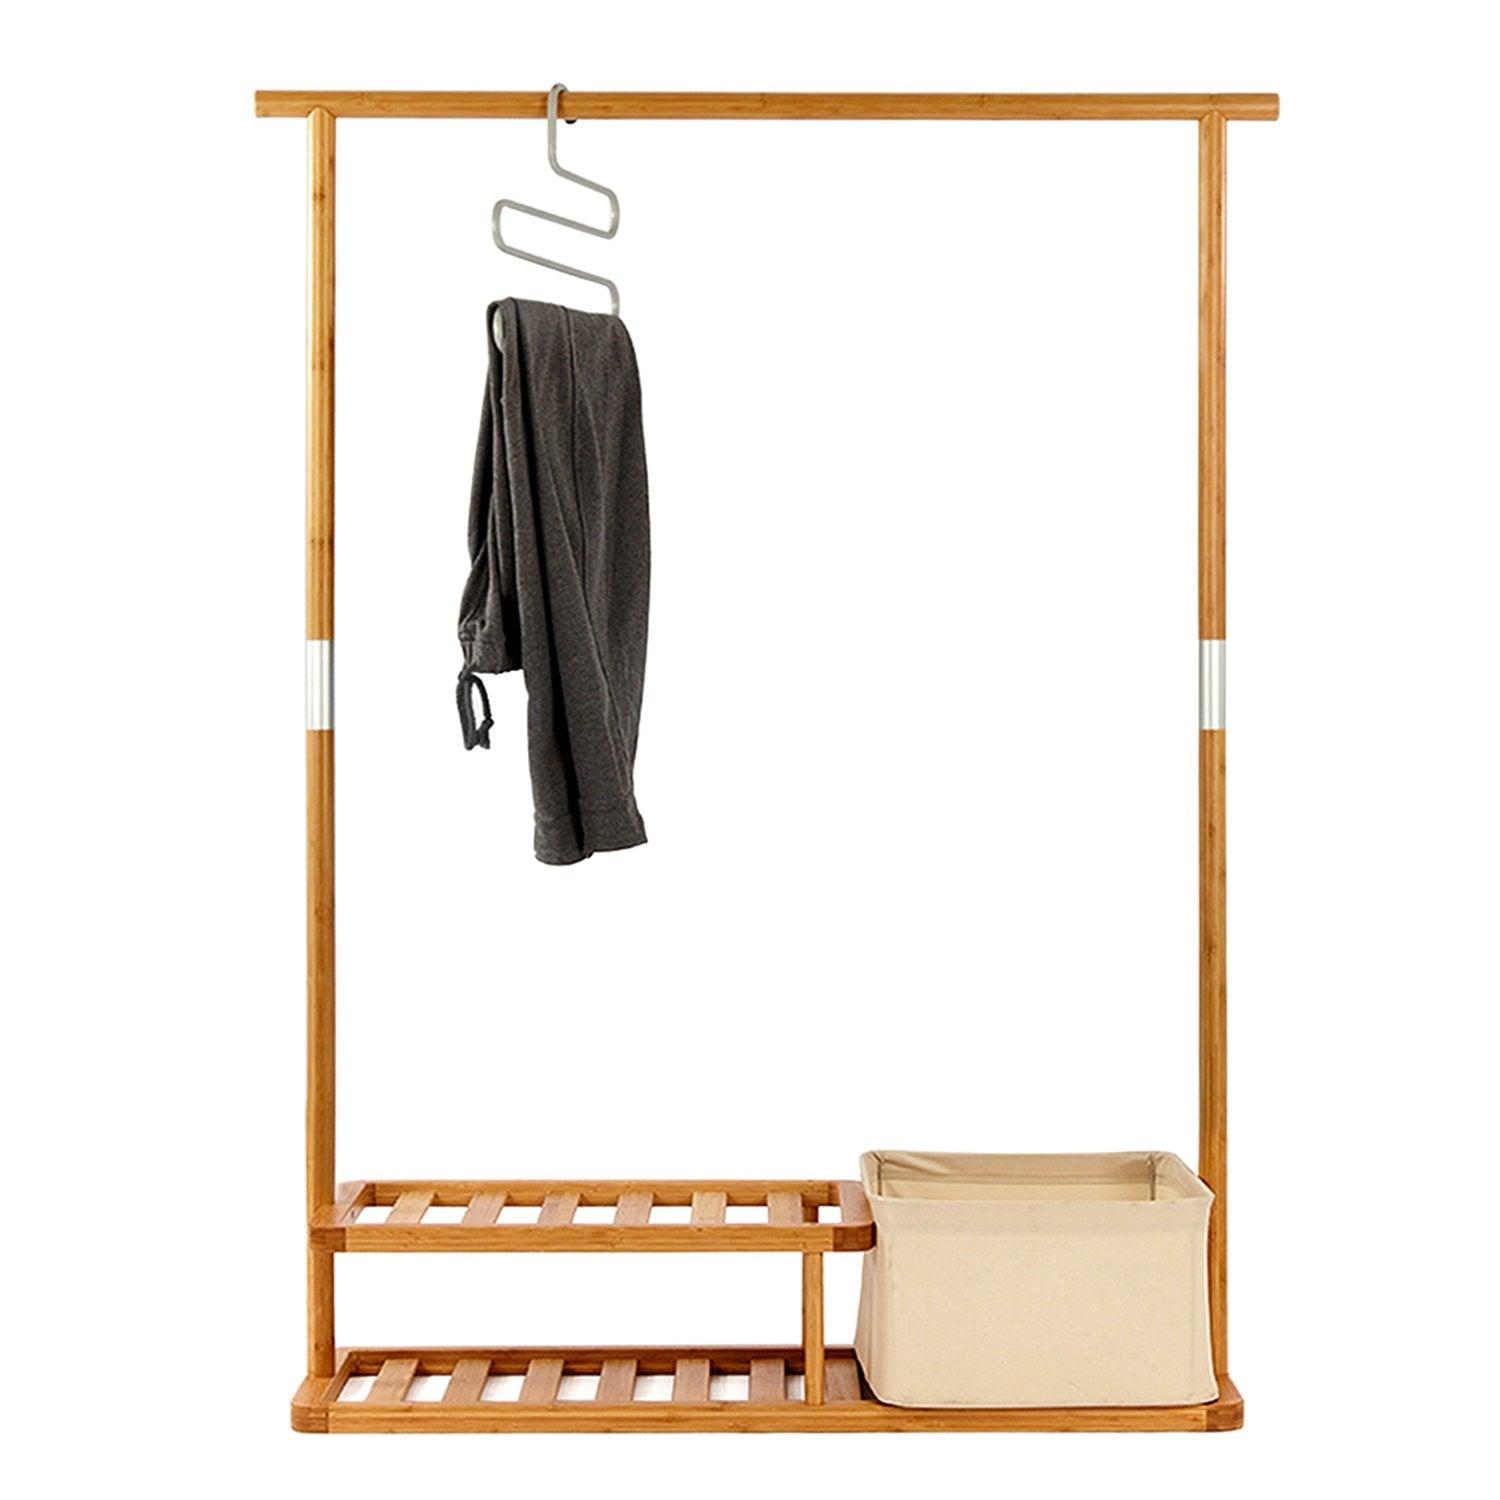 Segarty Garment Rack, Heavy Duty Bamboo Clothes Rack with 2 Tier Shoe Shelves and Laundry Basket, Commercial Hanger Drying Racks for Jacket Coat Dress Bags in Entryway and Bedroom, Natural Color